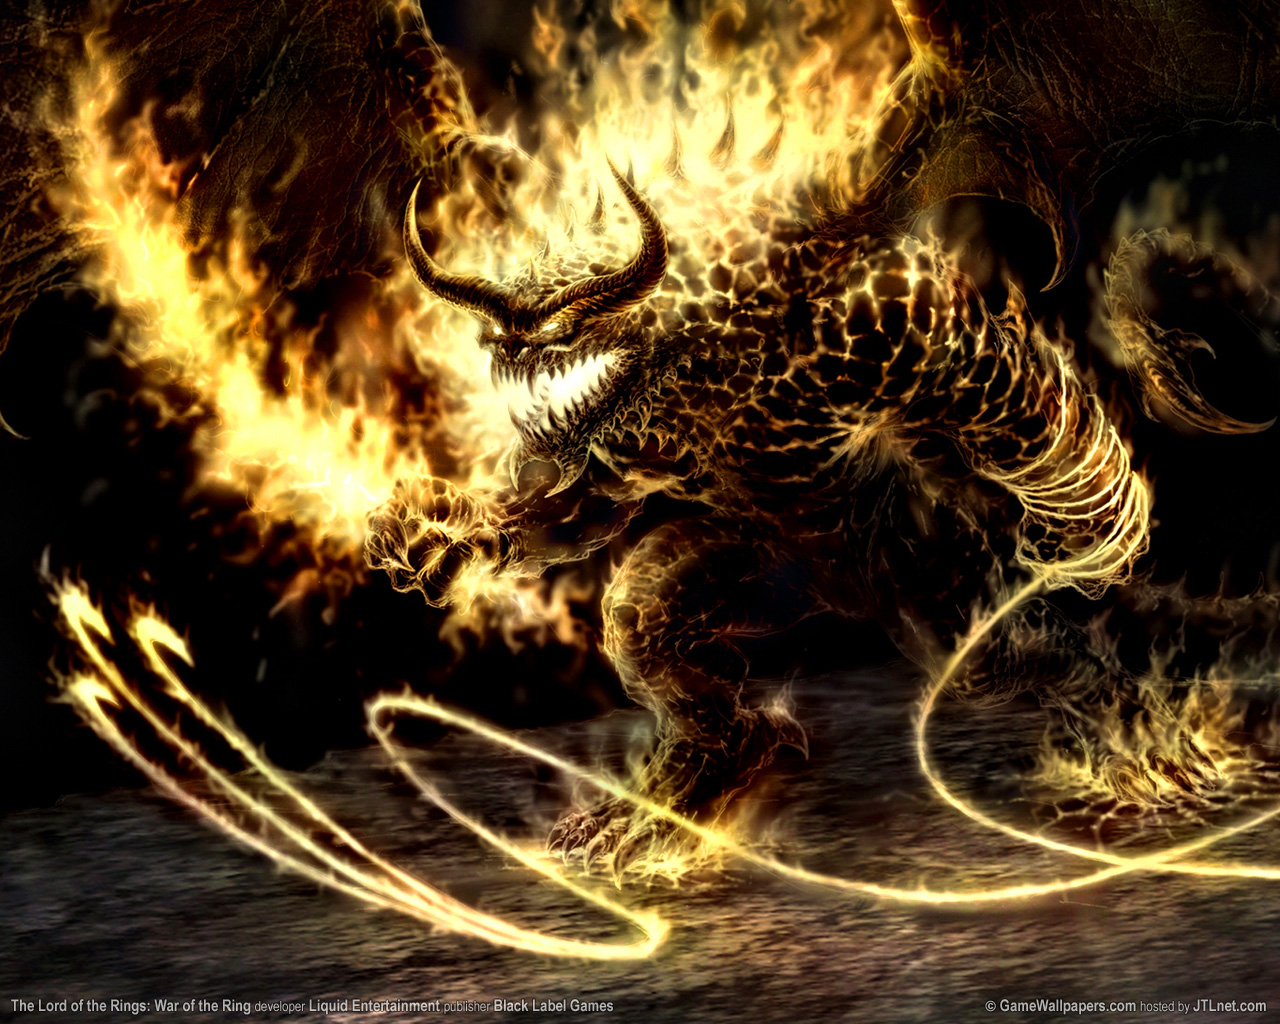 http://4.bp.blogspot.com/-_LOHsWEqInQ/Th3ZdbJGfuI/AAAAAAAAADY/JeGuZ3Xz1qk/s1600/Demon-Wallpapers-3.jpeg